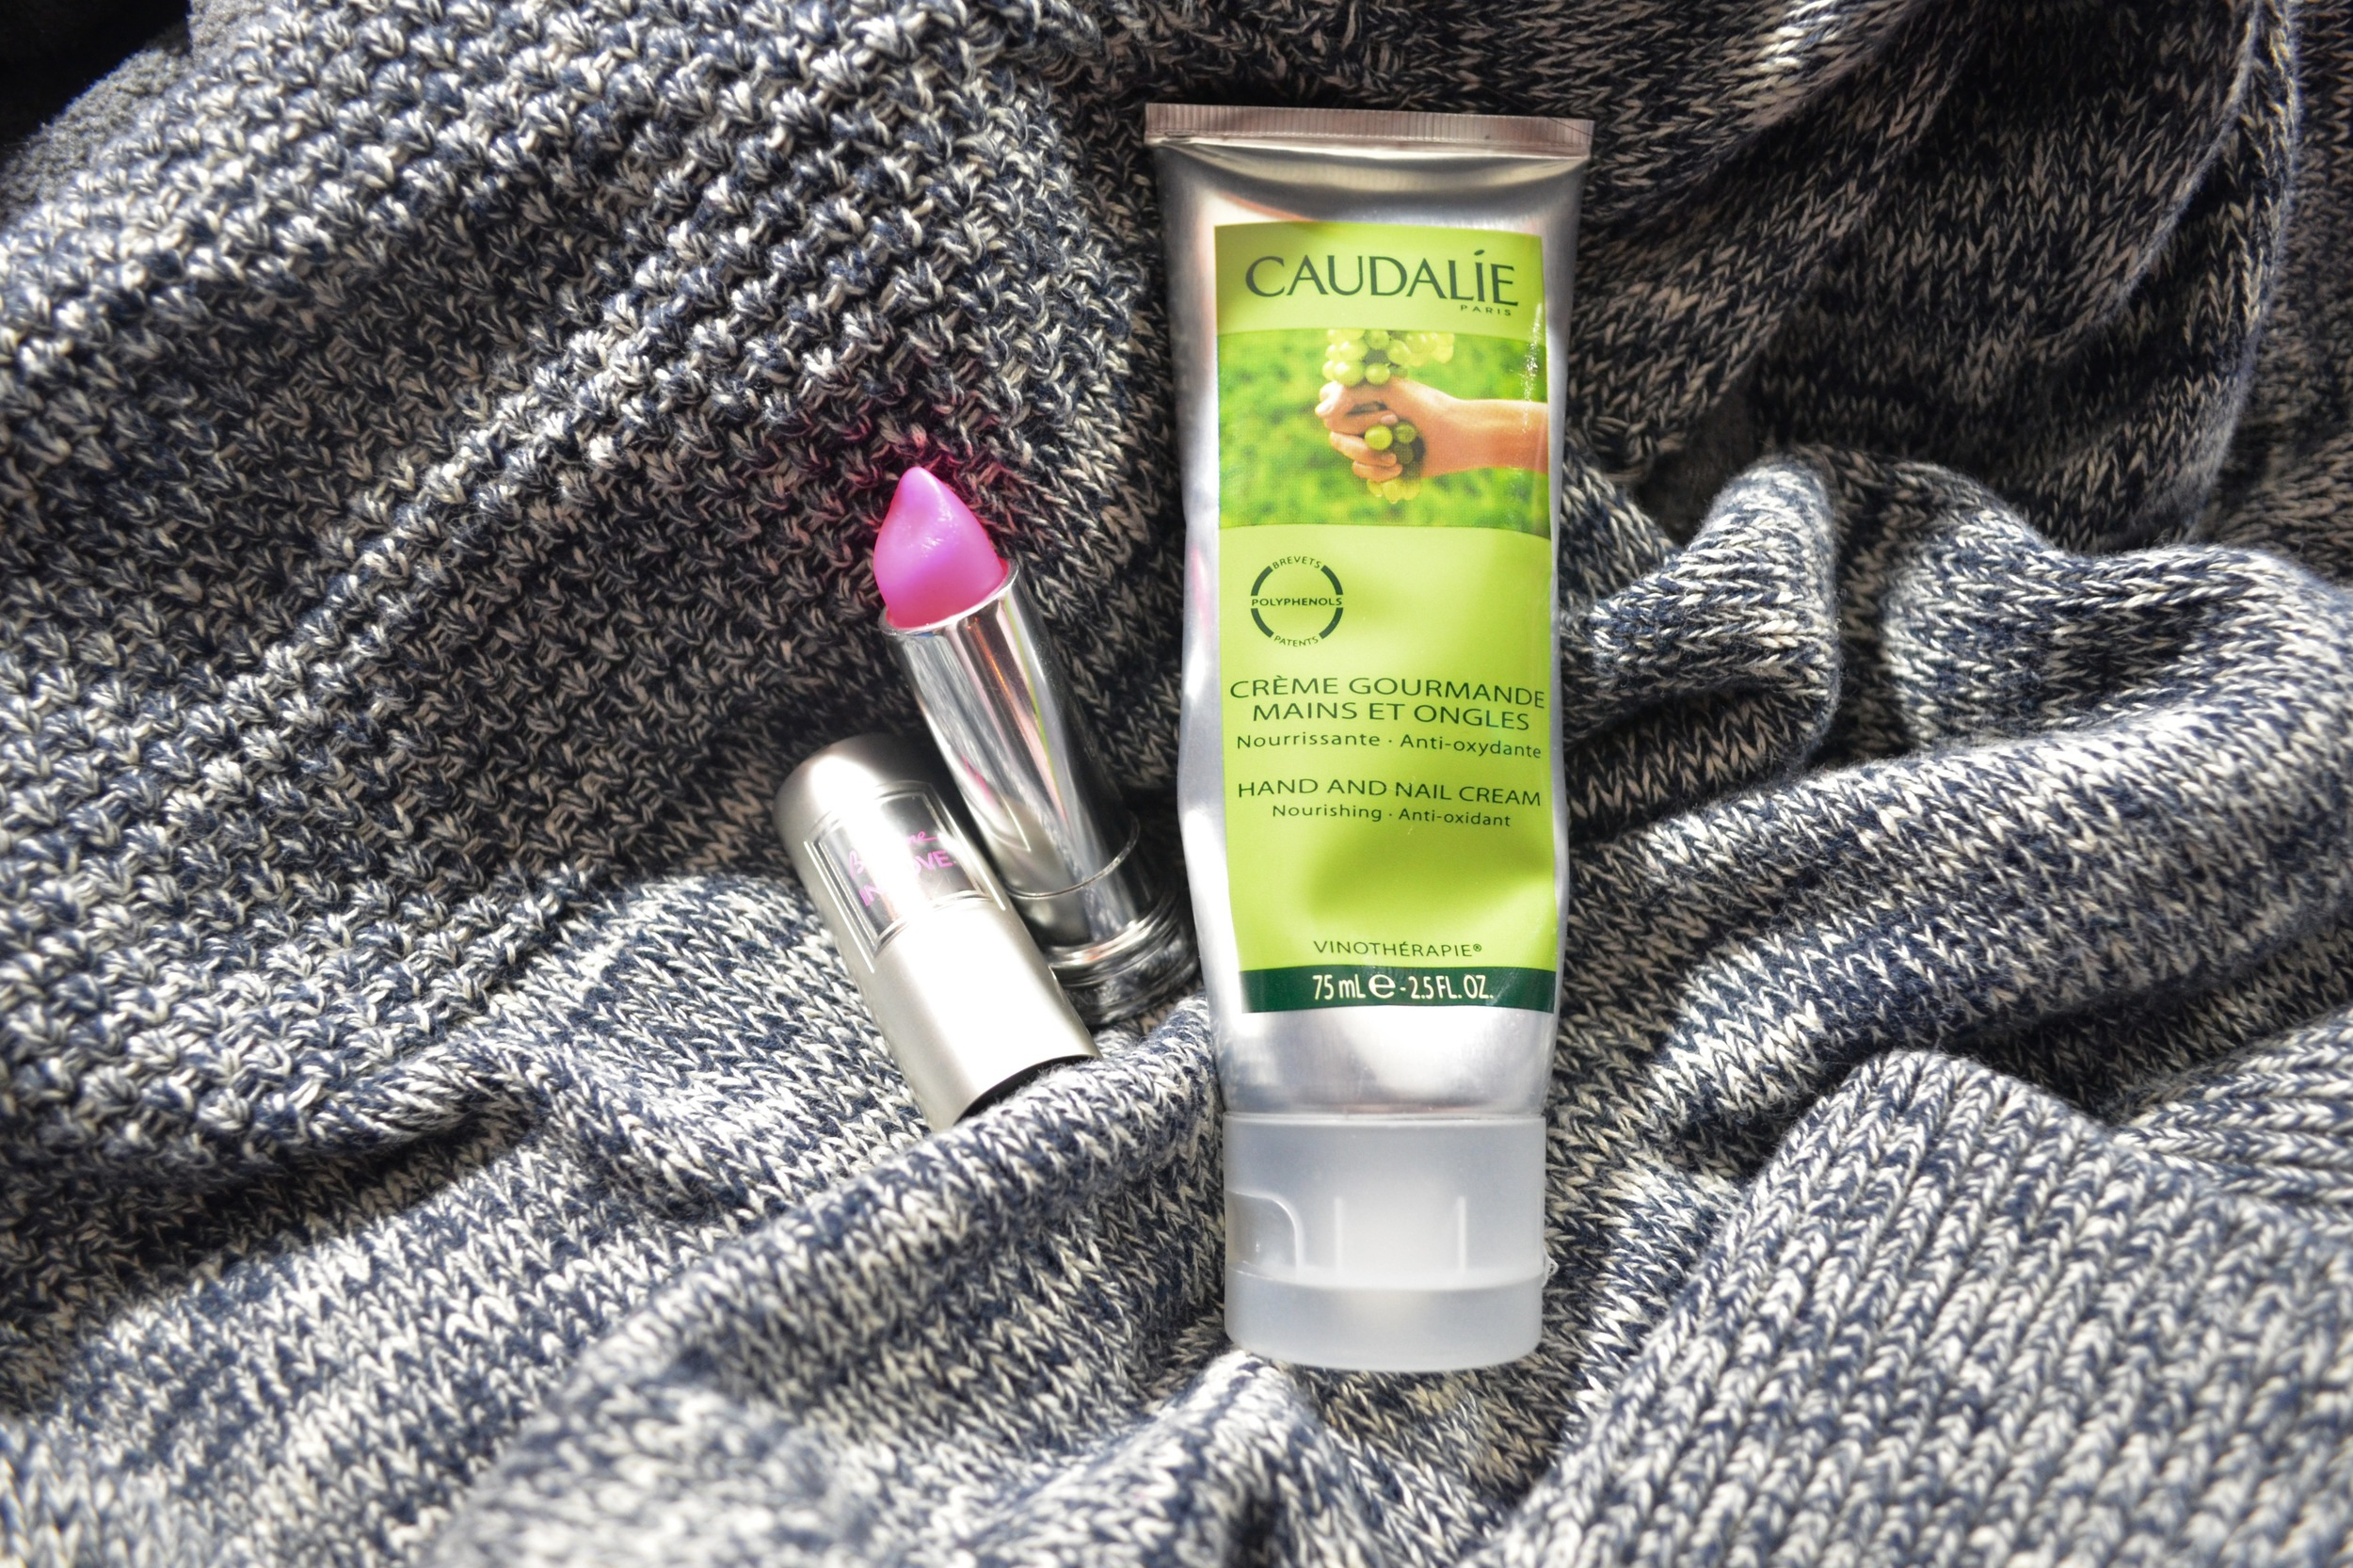 lancome baume in love review, caudalie hand cream review